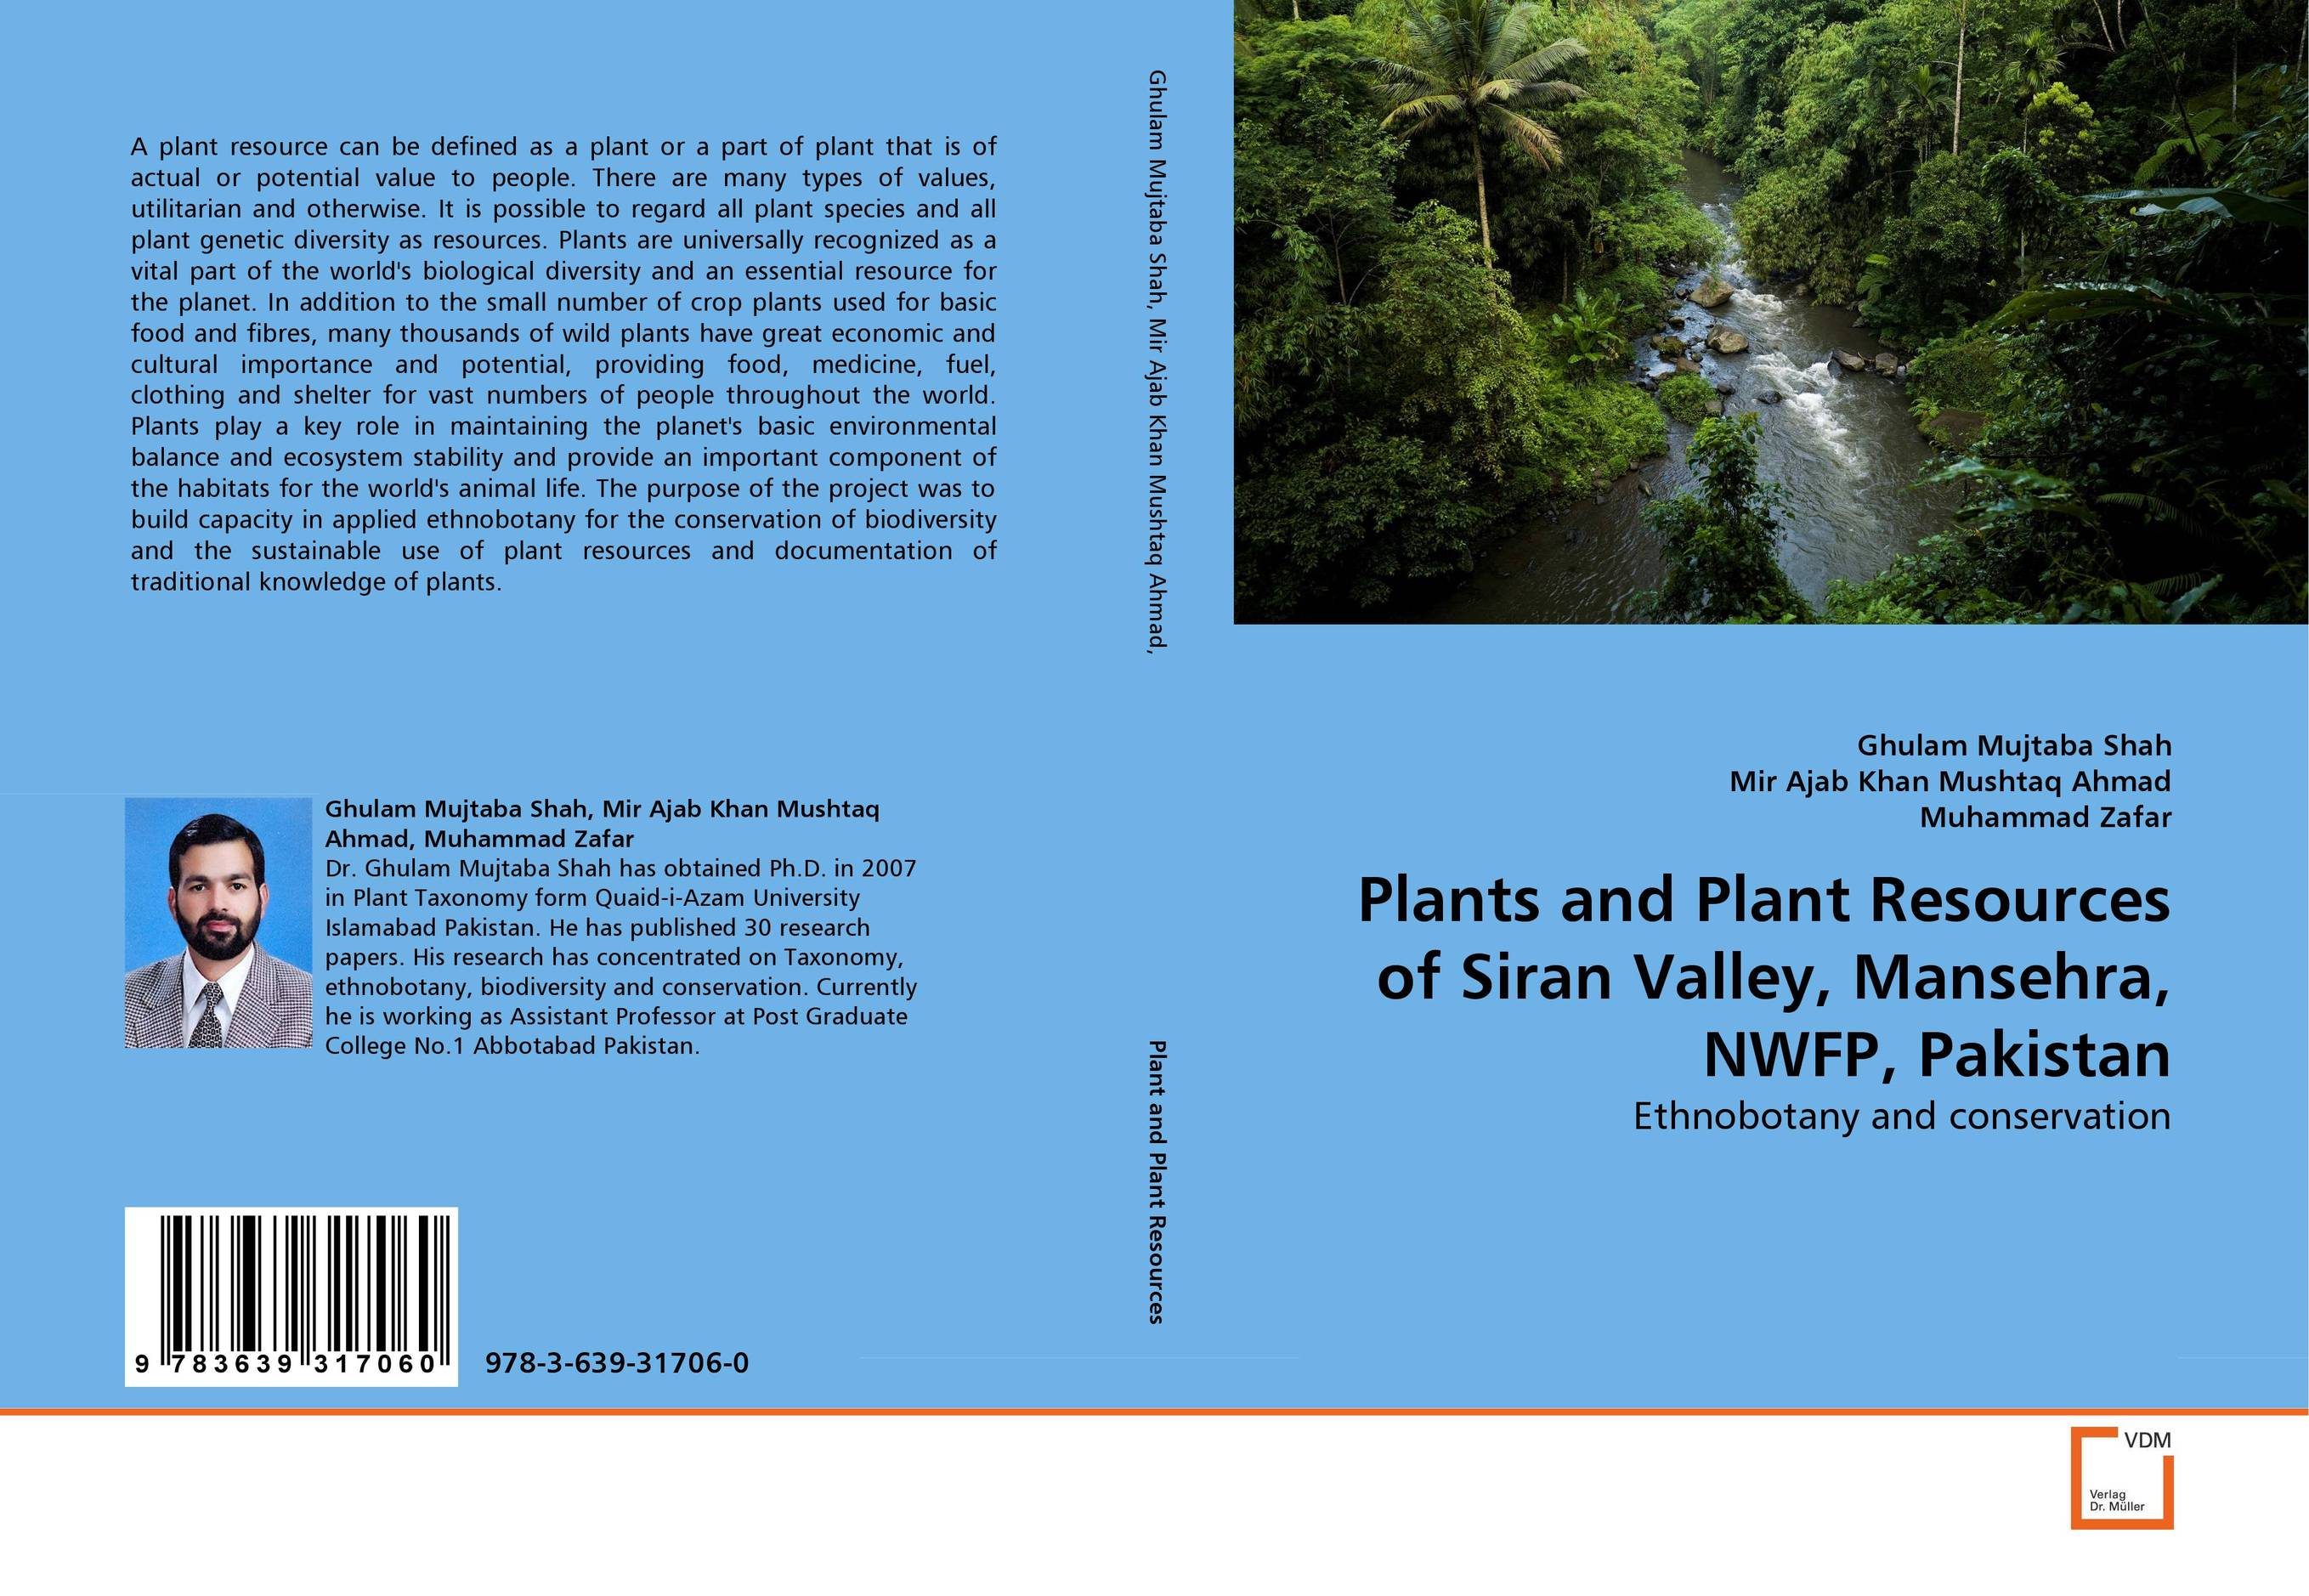 Plants and Plant Resources of Siran Valley, Mansehra, NWFP, Pakistan resurrection plants hydrophile jericho rose plant